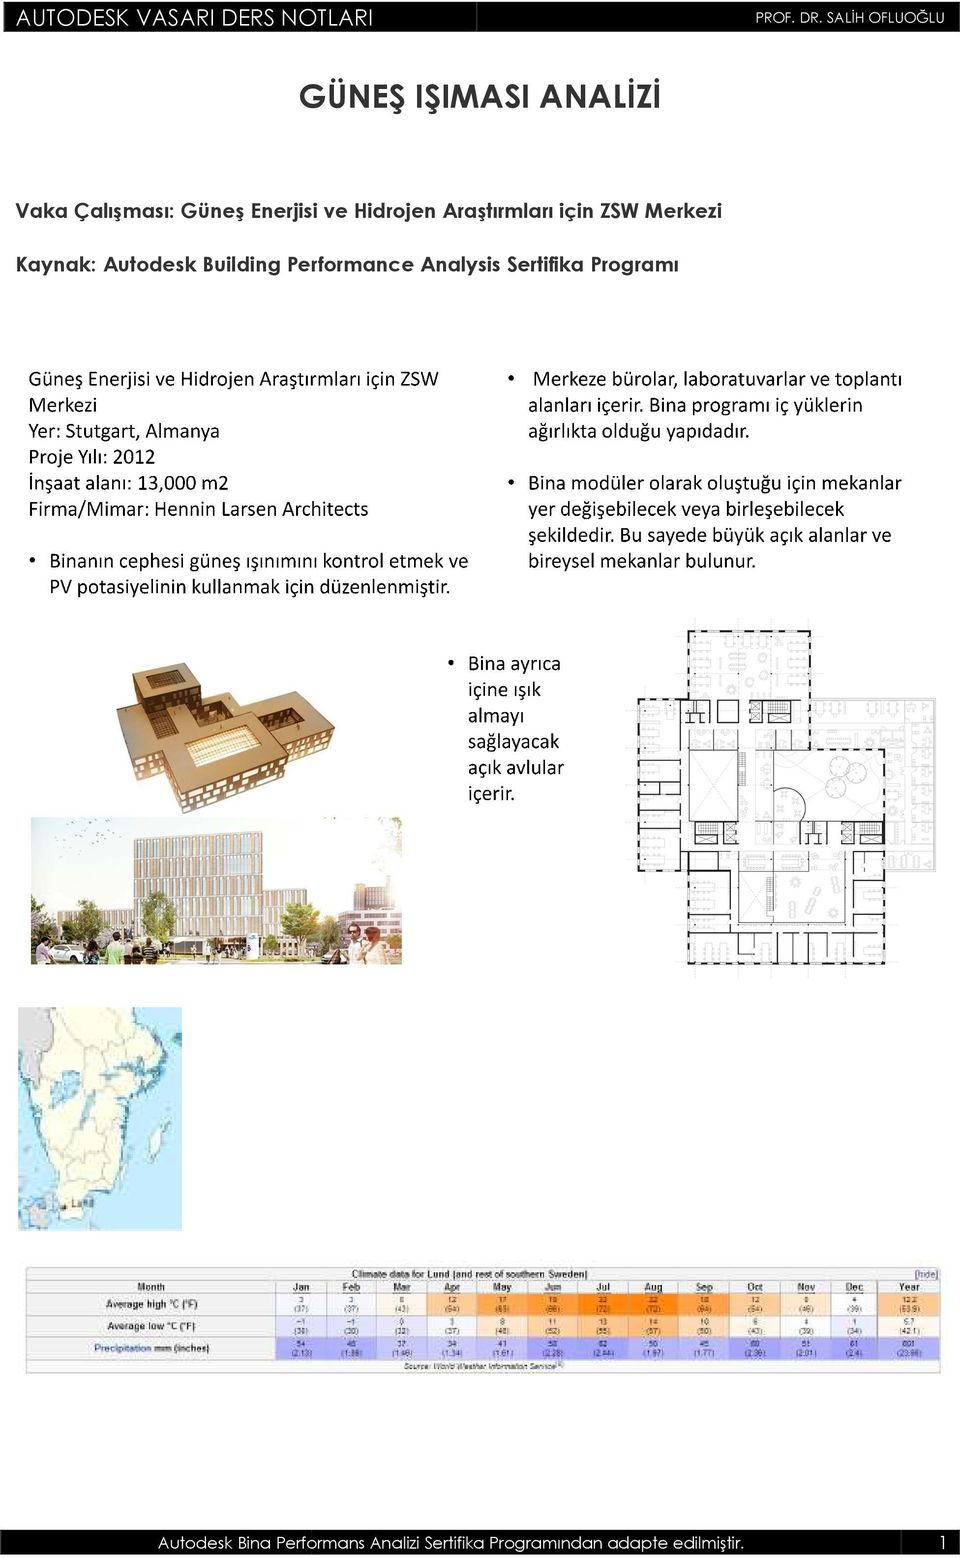 Autodesk Building Performance Analysis Sertifika Programı Autodesk